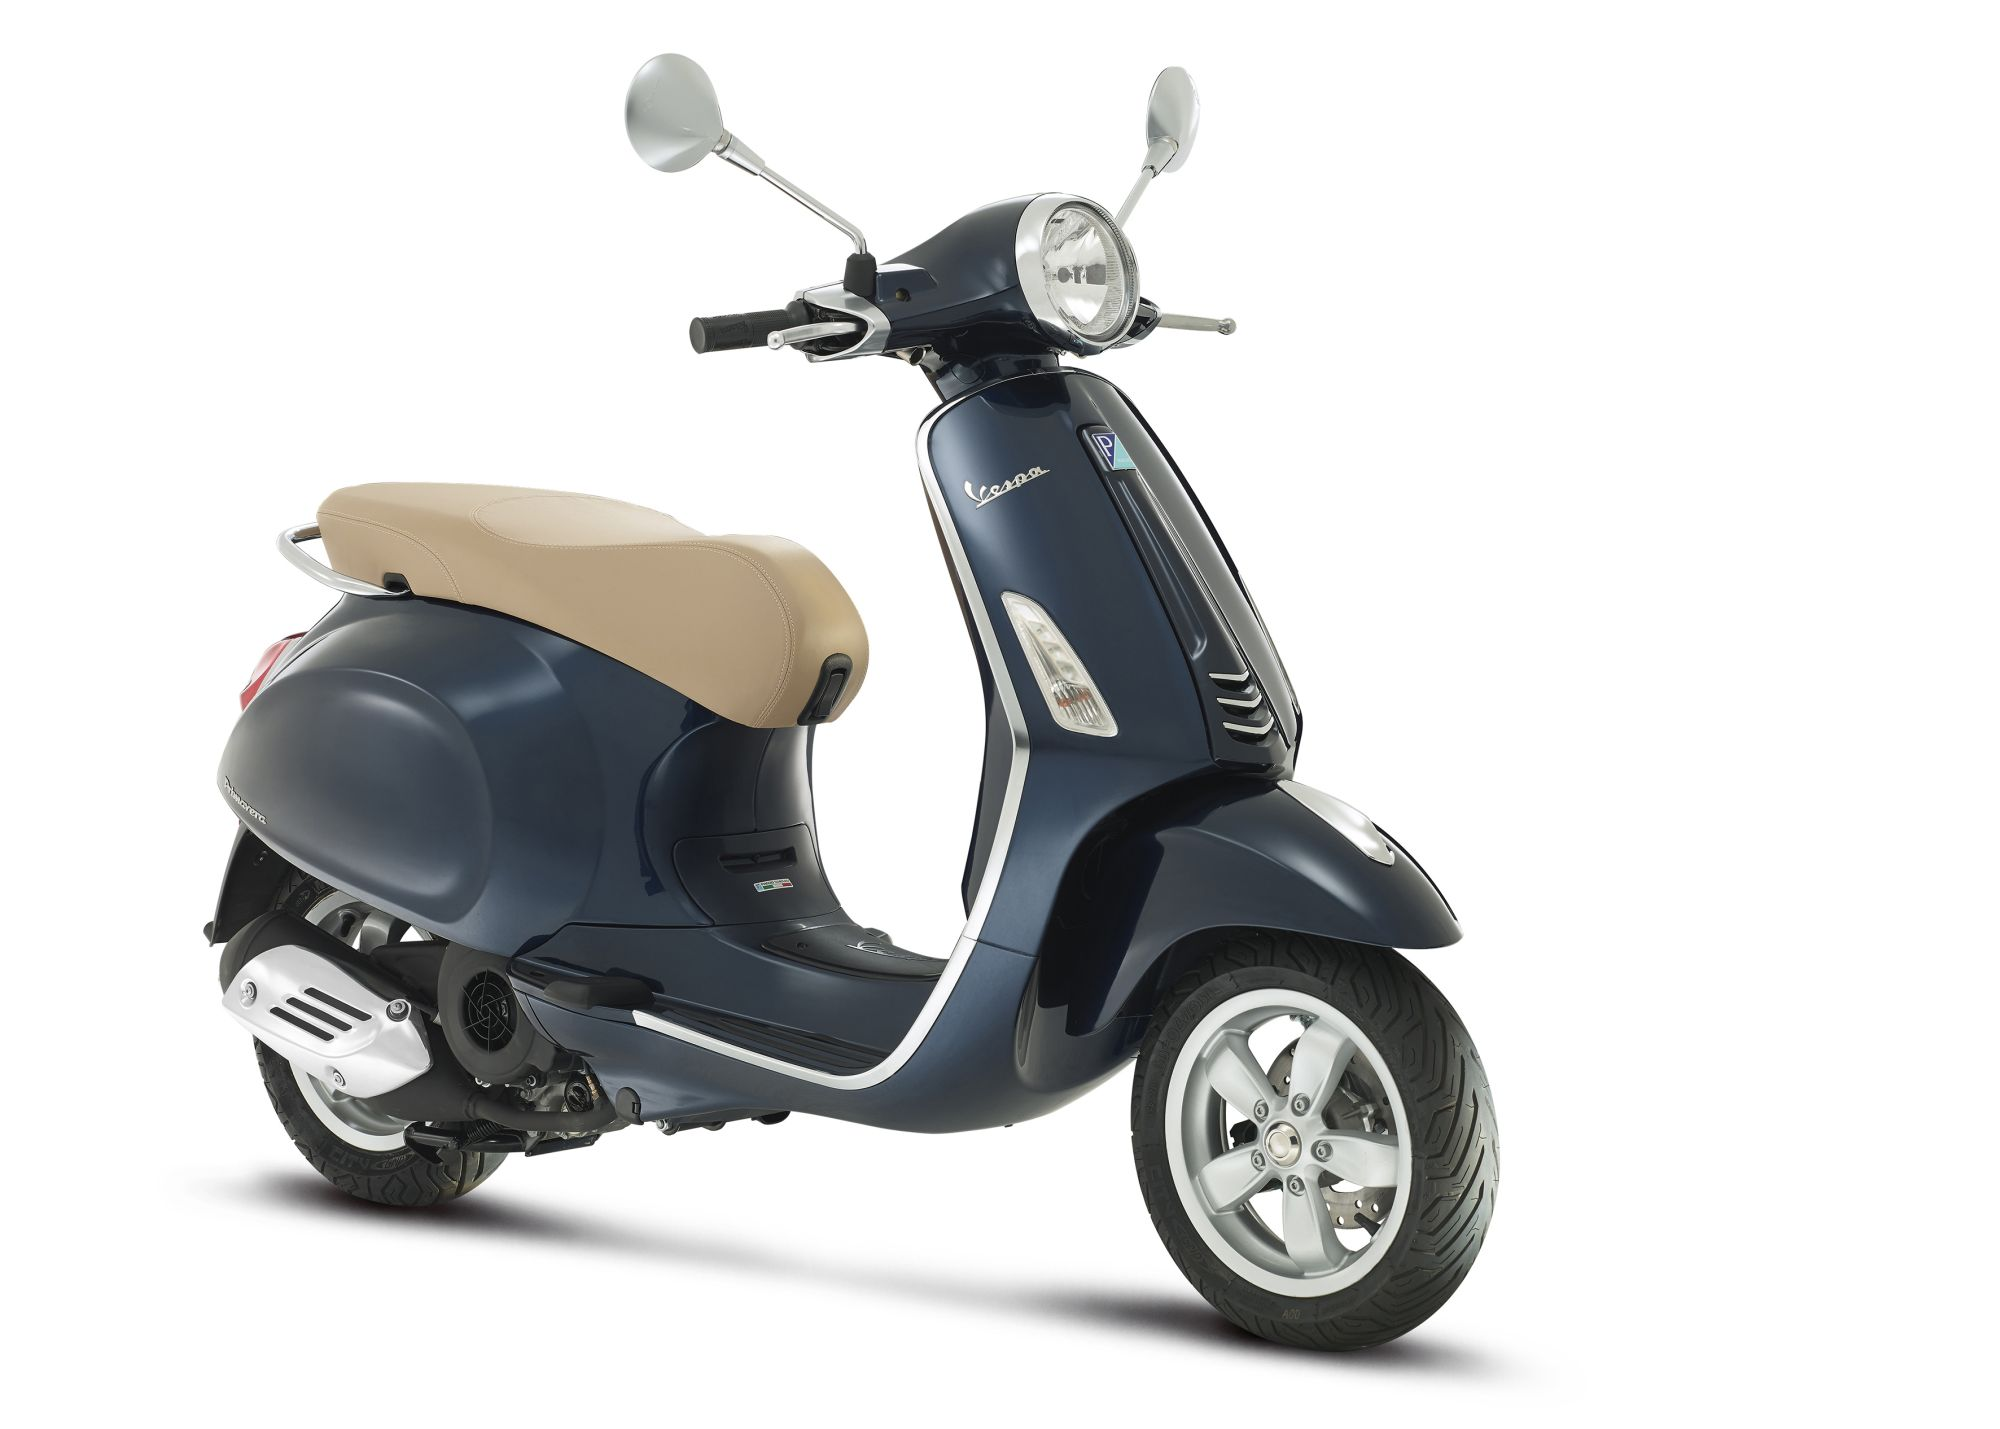 vespa primavera 50 2t bilder und technische daten. Black Bedroom Furniture Sets. Home Design Ideas